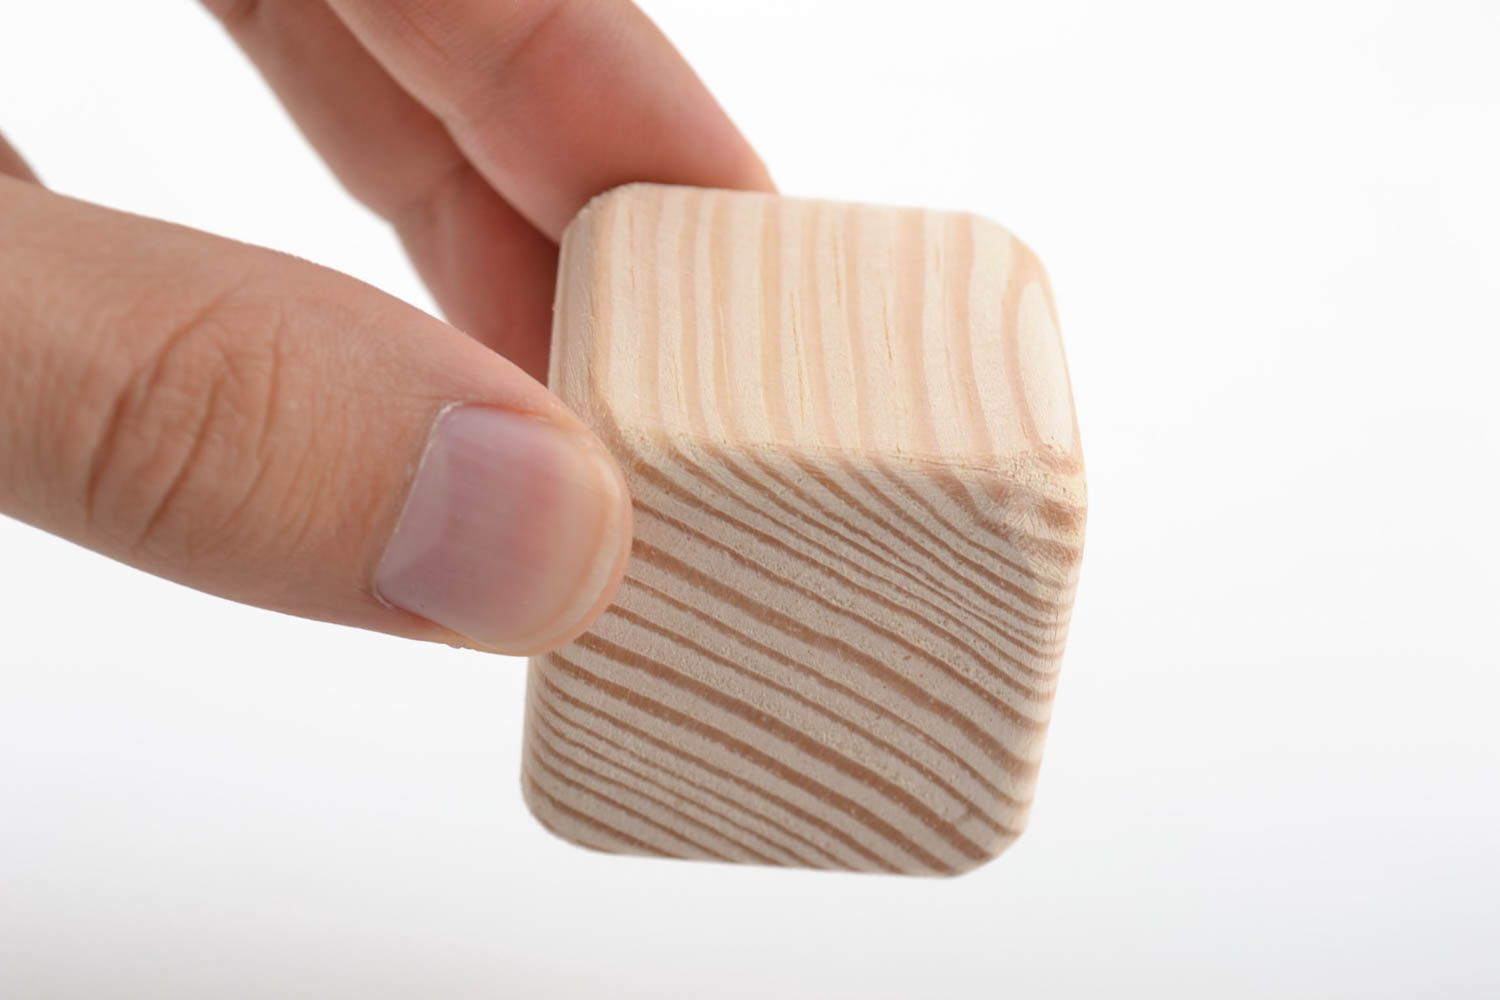 Handmade small pine wood craft blank for decoration cube toy art supplies photo 1